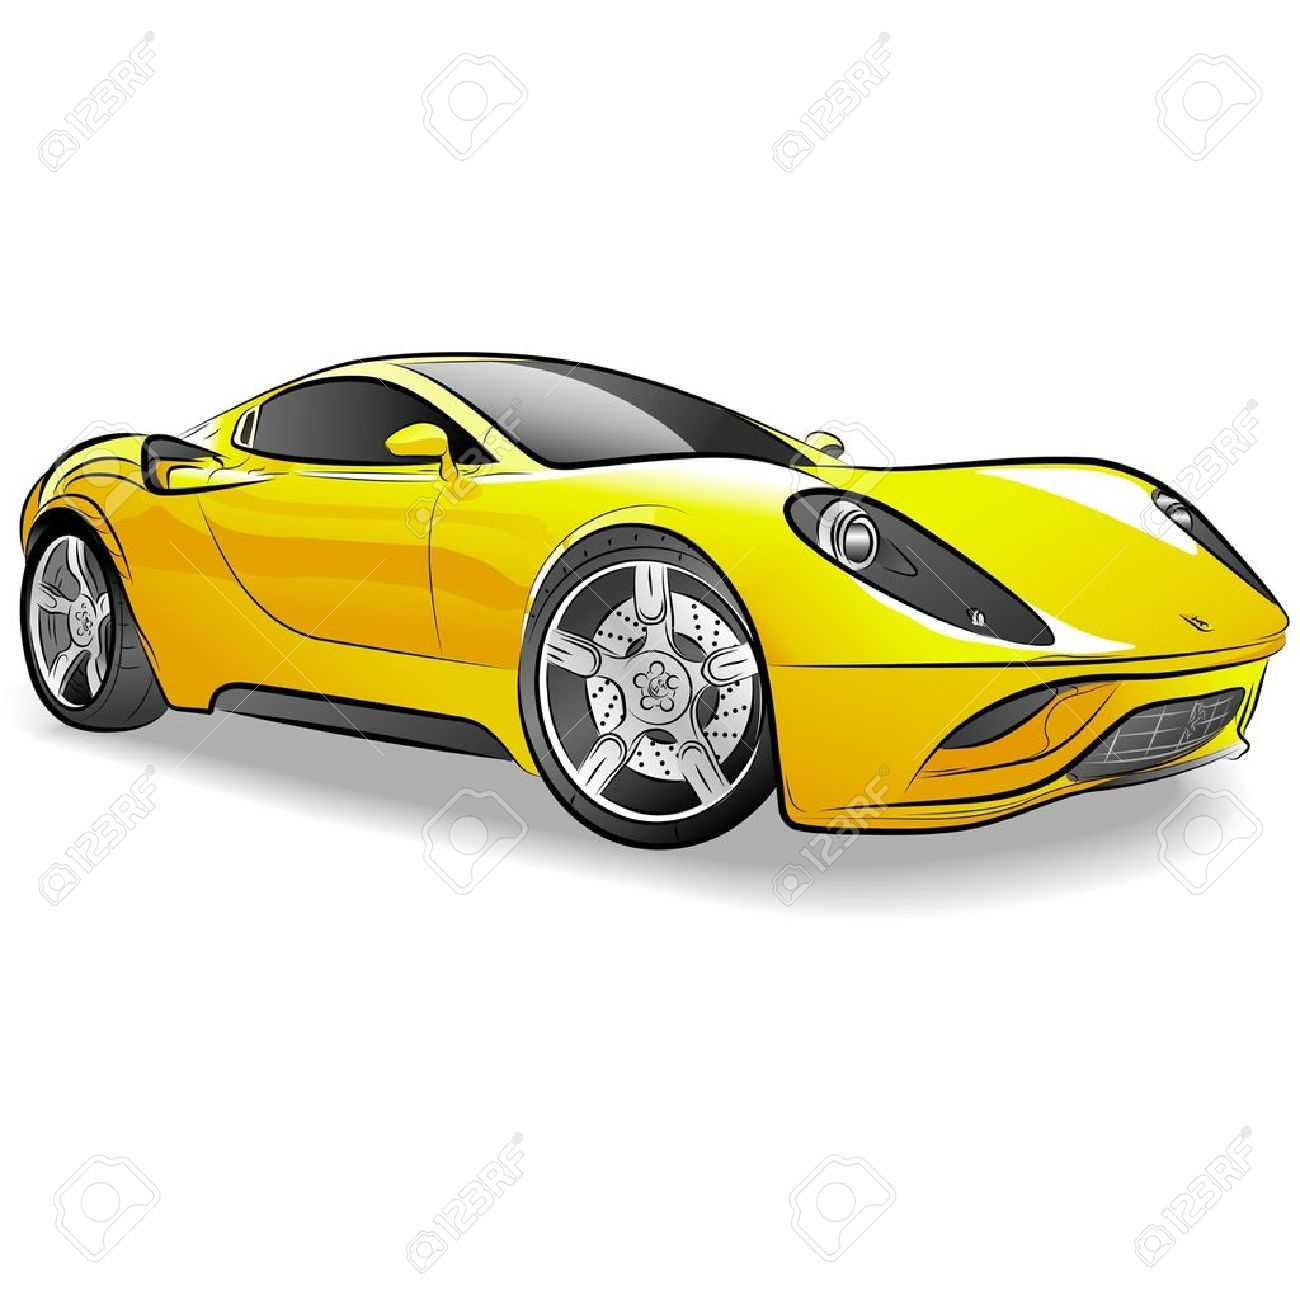 Fancy car clipart 1 » Clipart Portal.